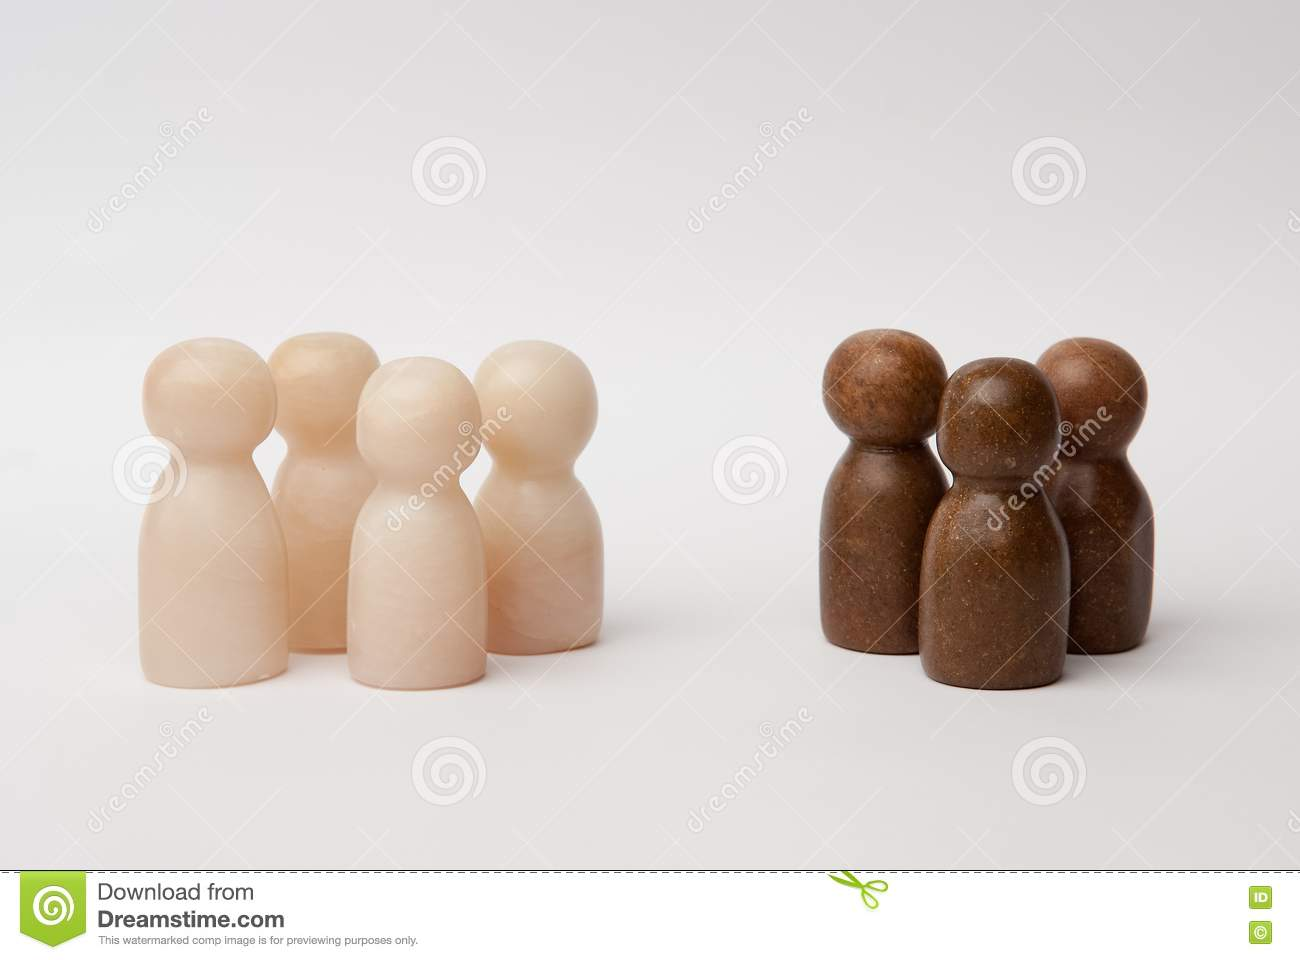 White and brown figures